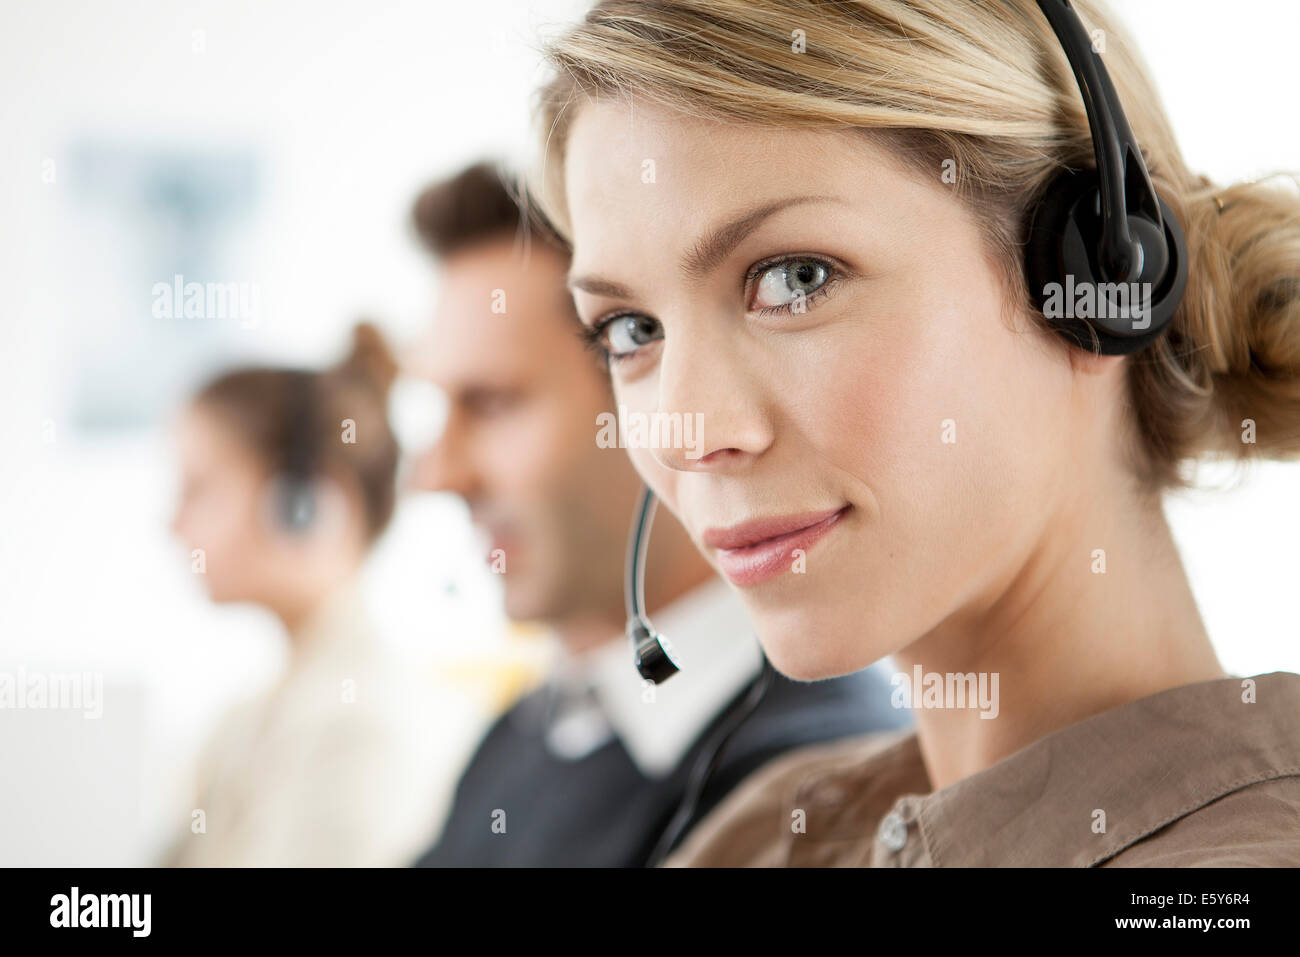 Telemarketer working in call center Stock Photo